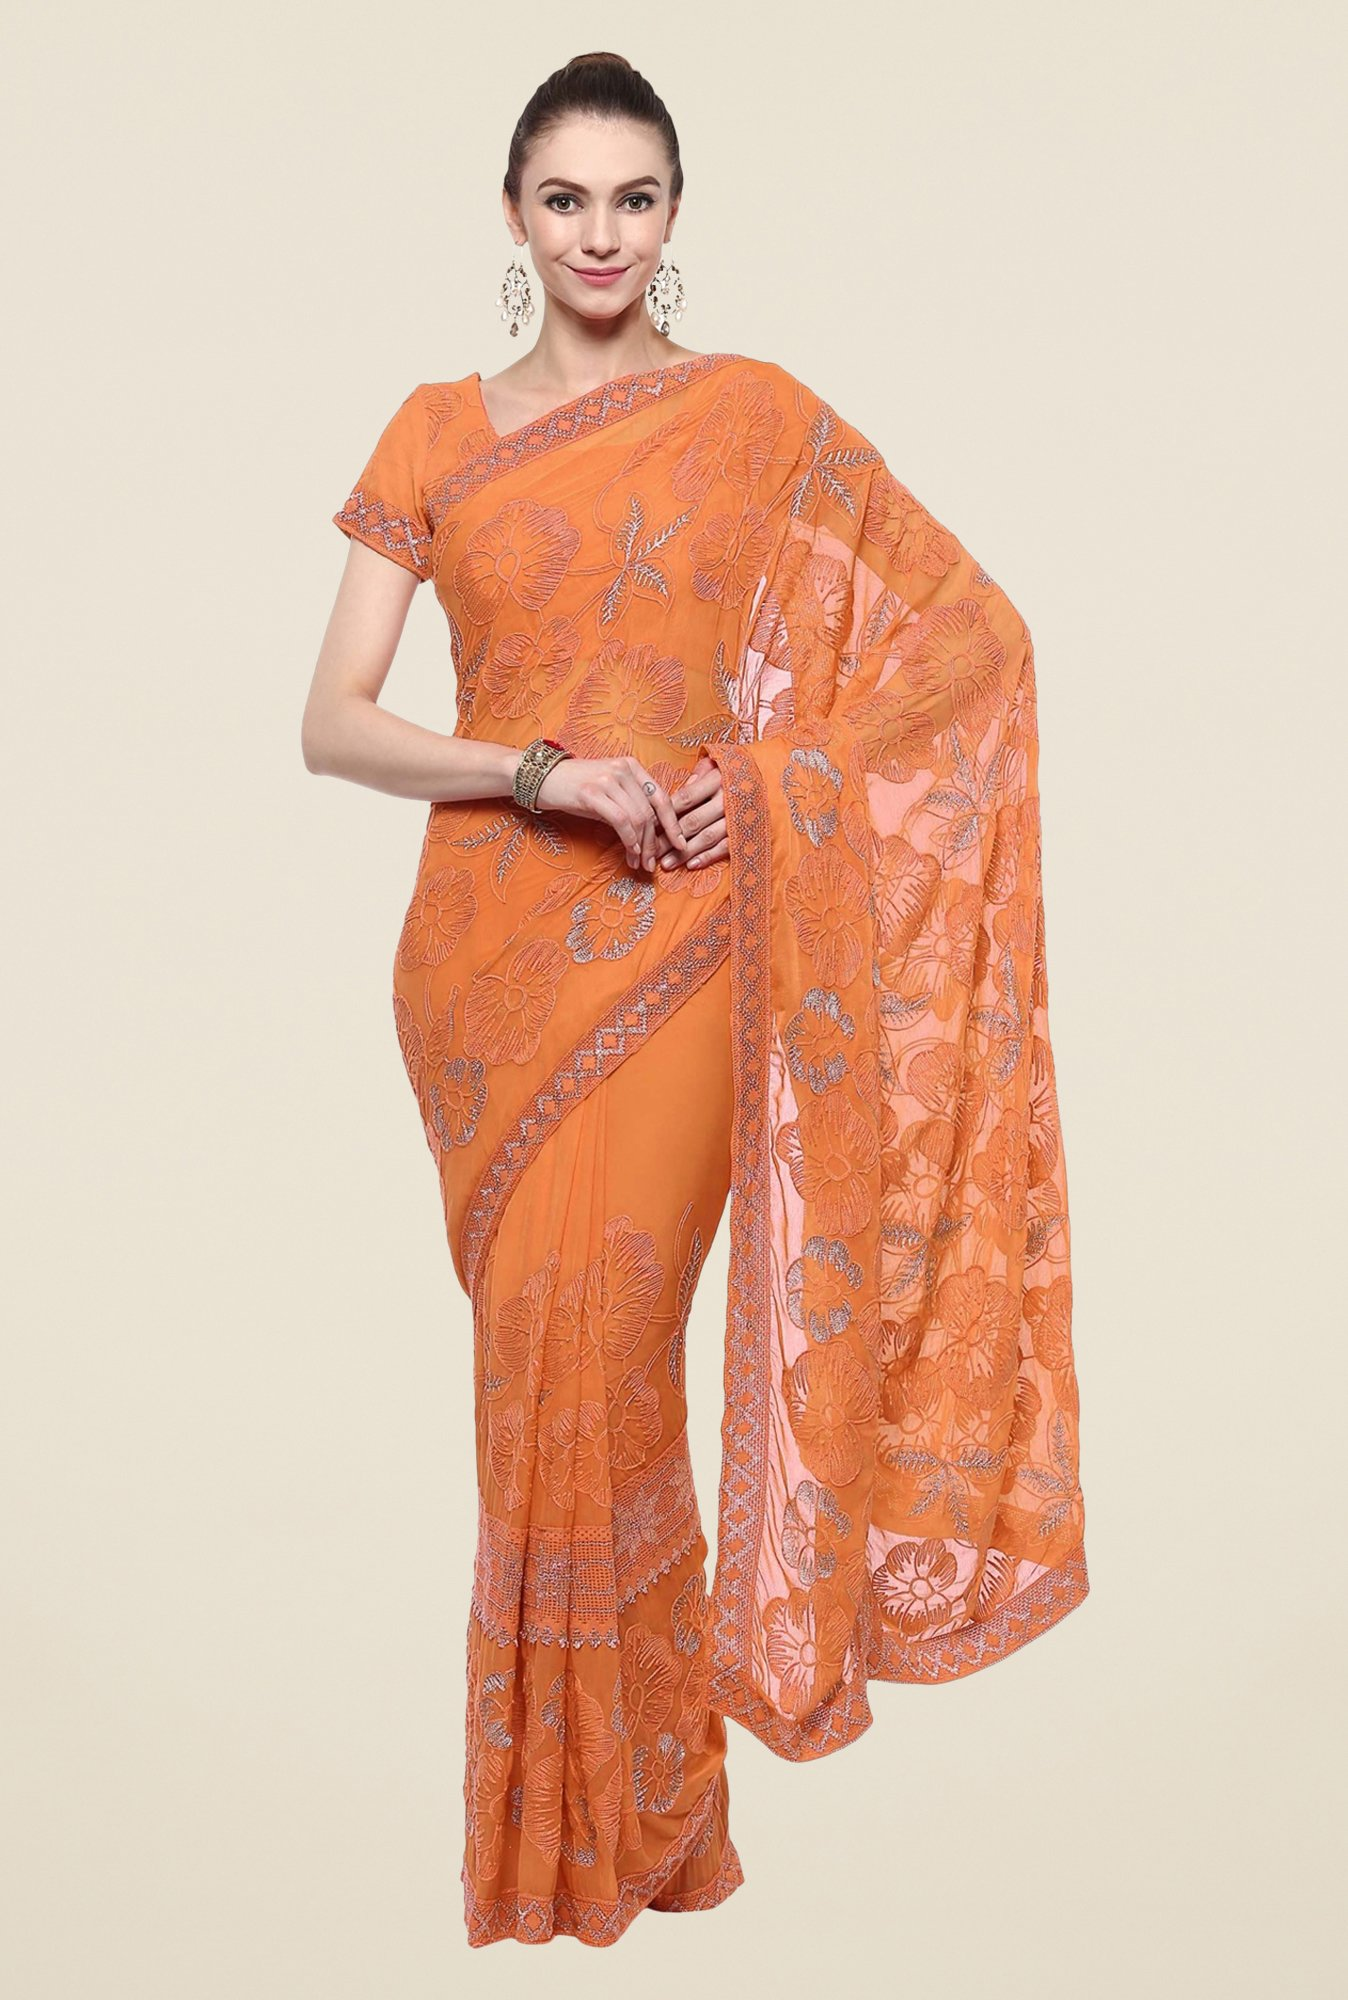 Triveni Orange Embroidered Chiffon Saree